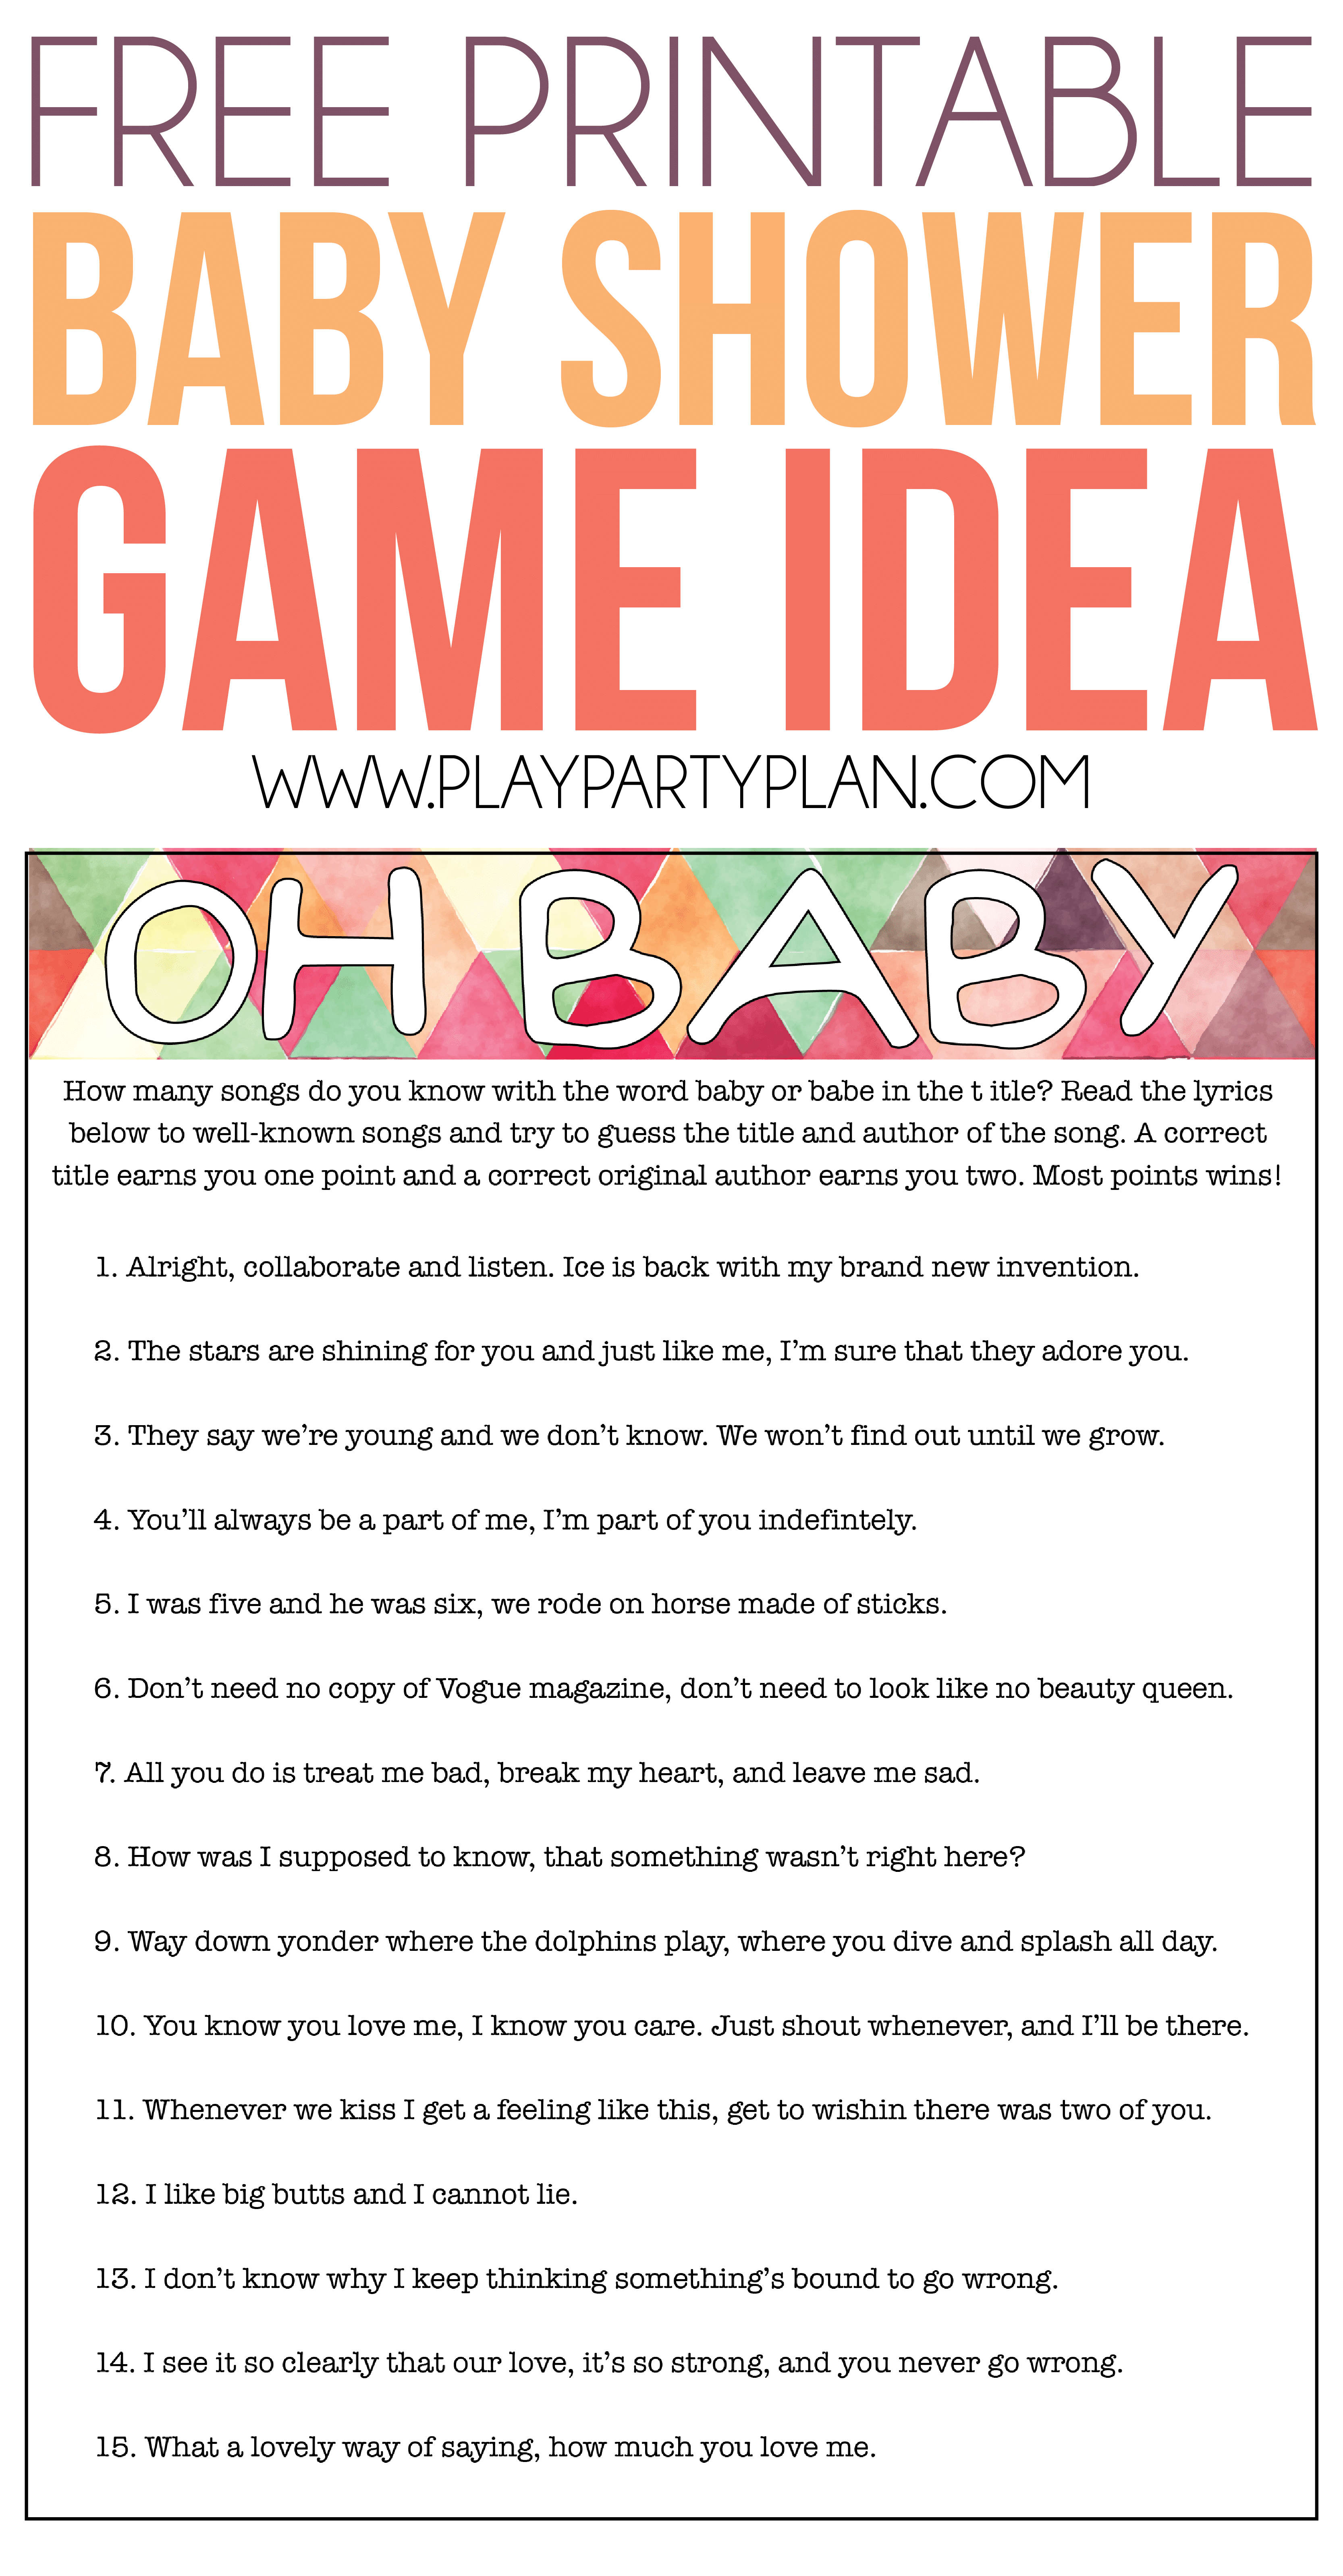 Oh Baby! Free Printable Baby Shower Game Expecting Moms Will Love - Free Printable Baby Shower Games For Large Groups